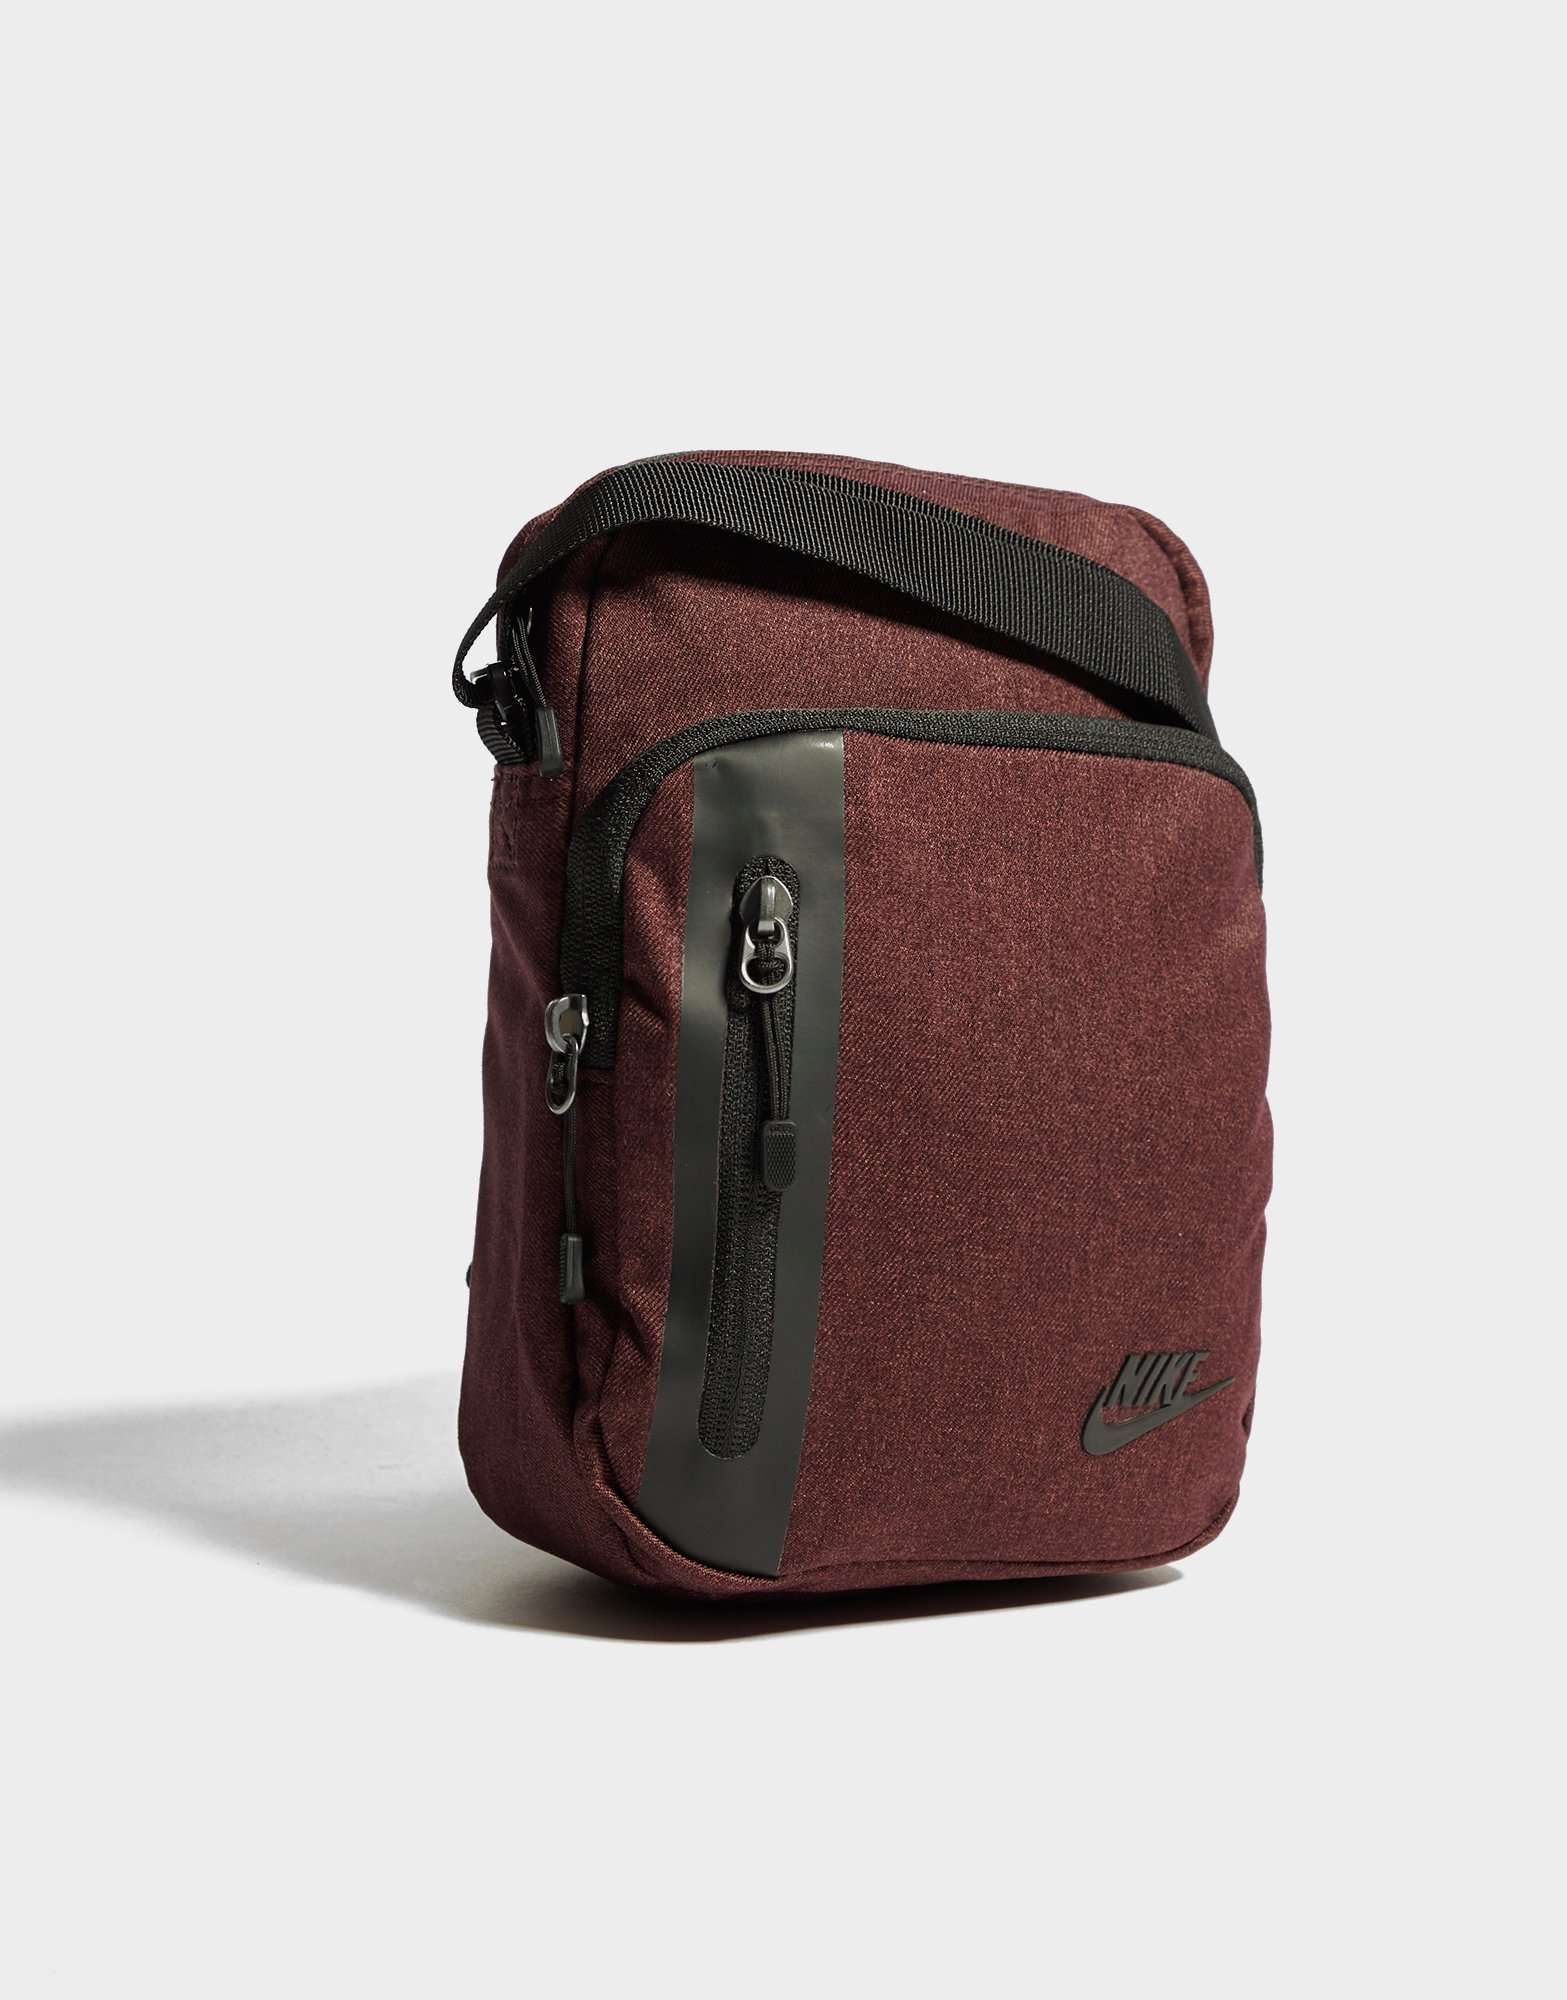 Nike Core Small Crossbody Bag - Shop online for Nike Core Small Crossbody  Bag with JD Sports 404da8a3806cf